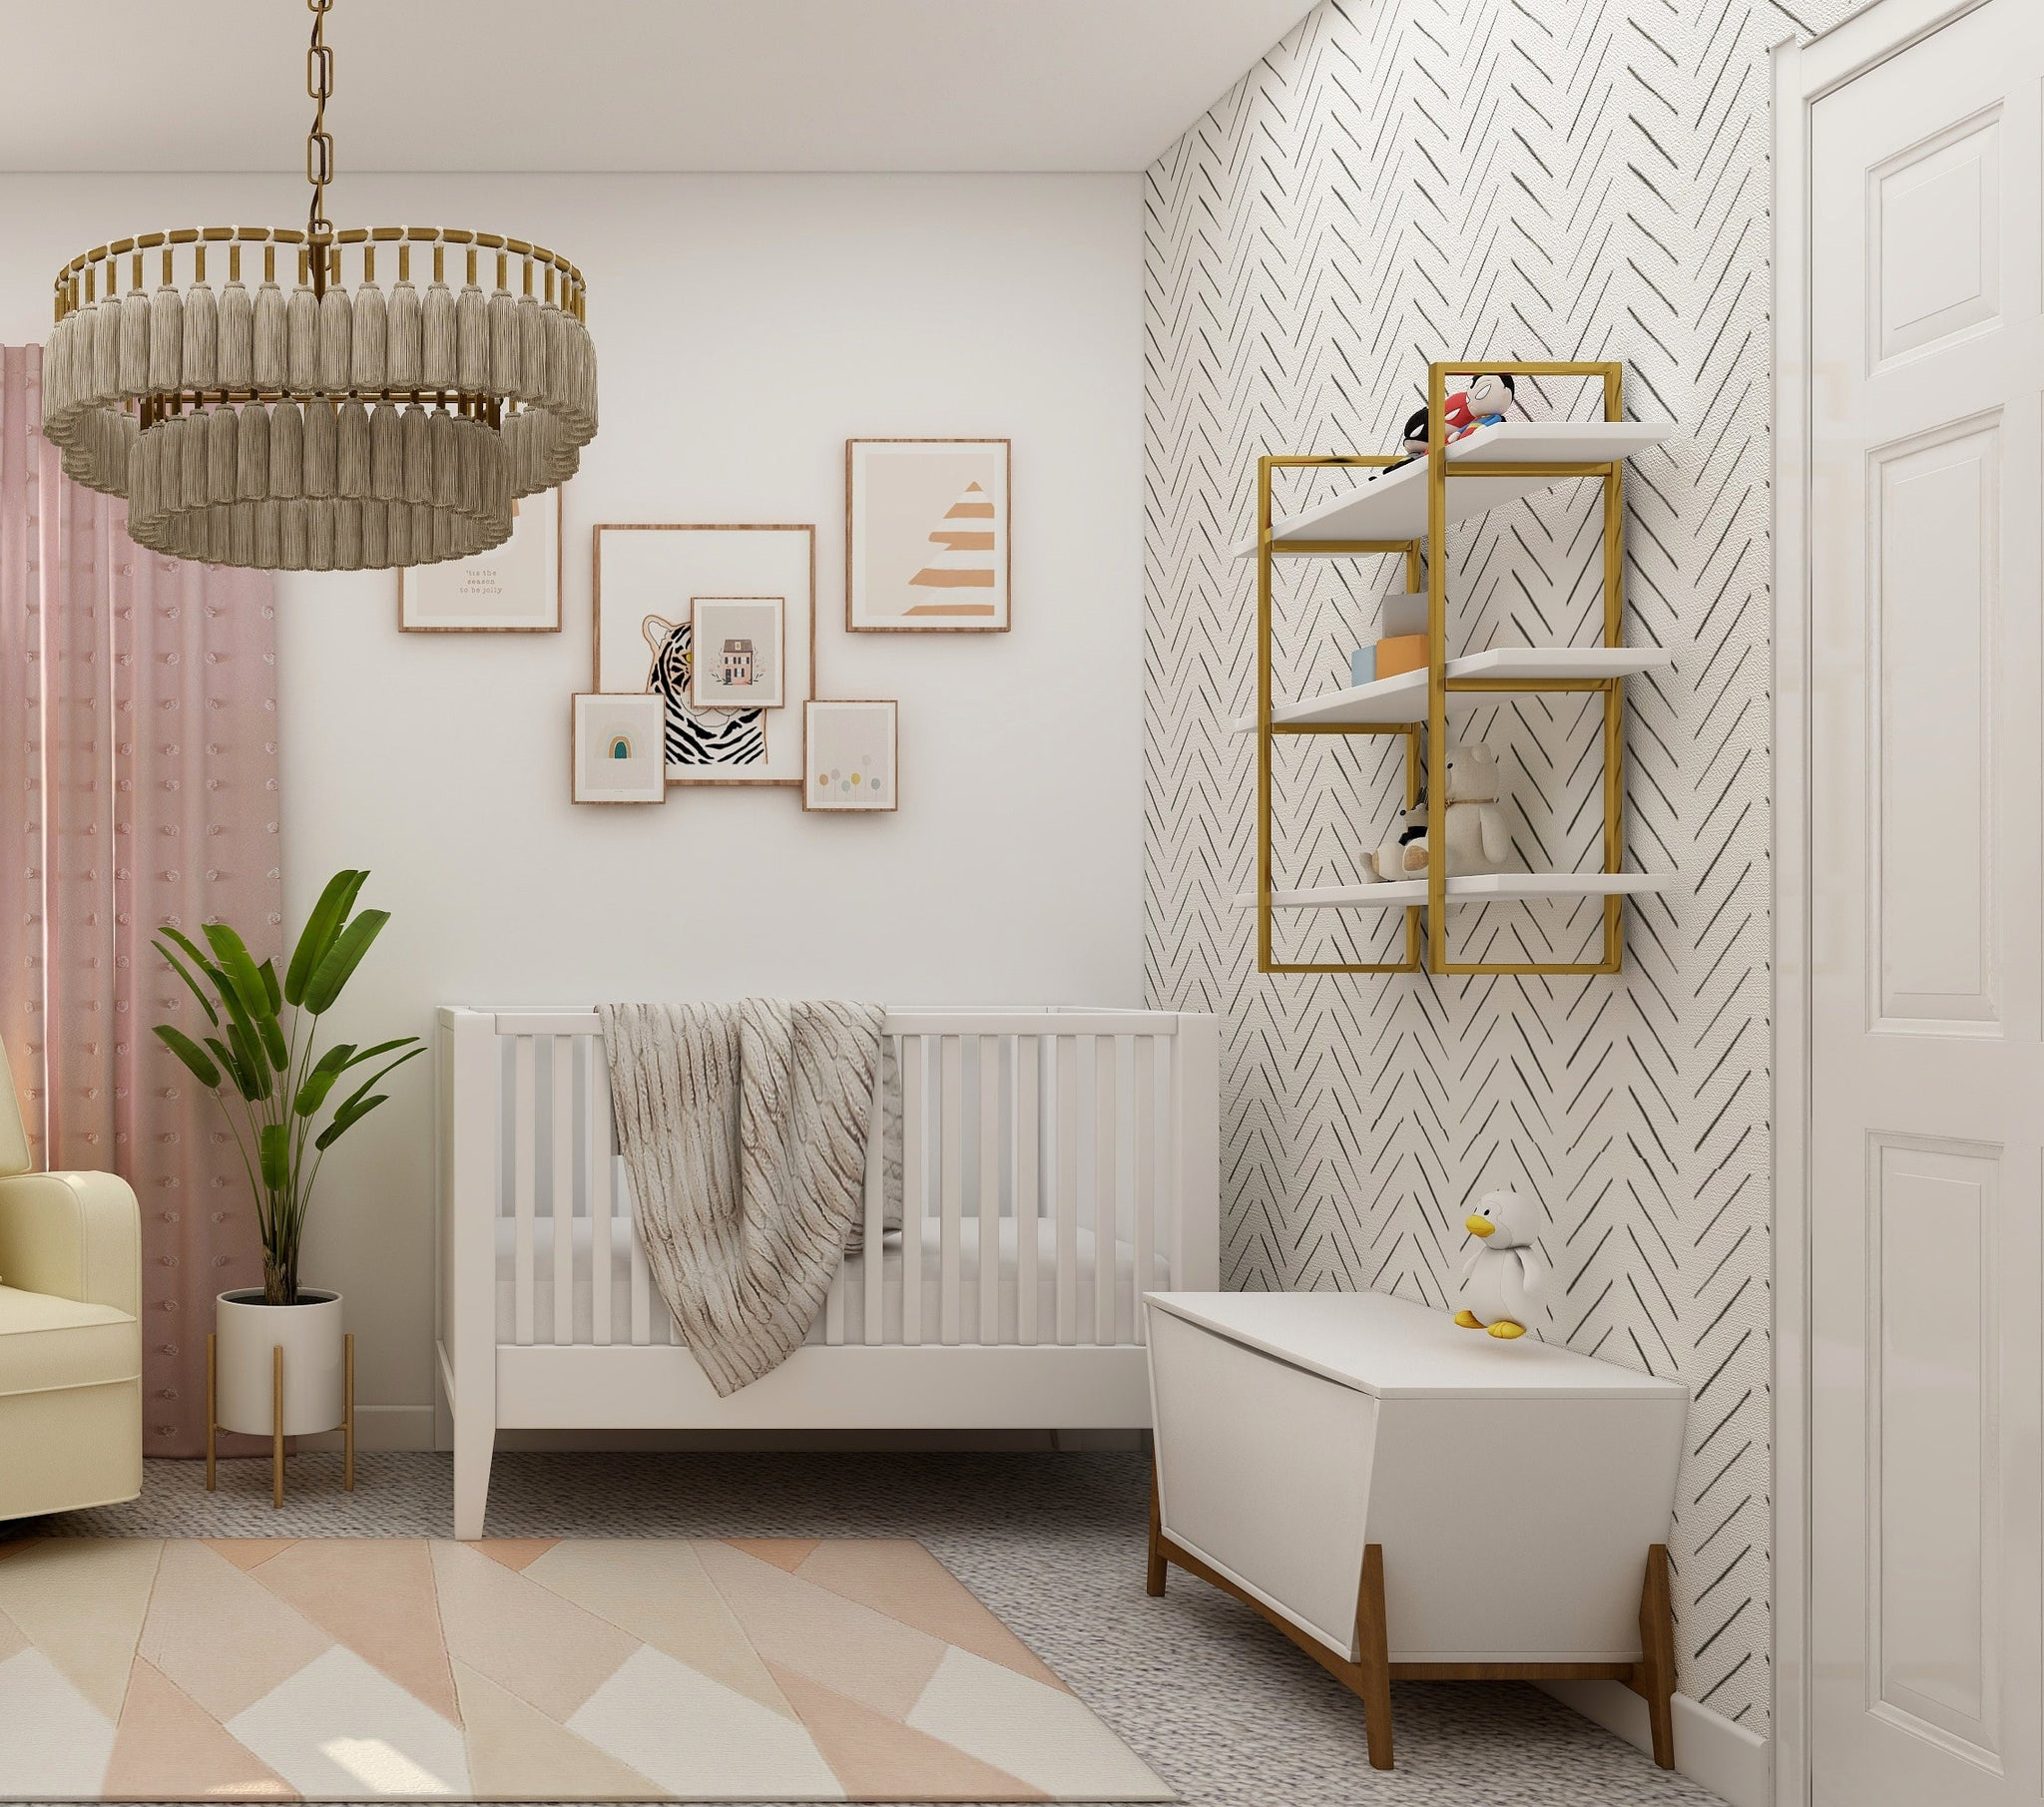 White and pink baby nursery with wallpaper